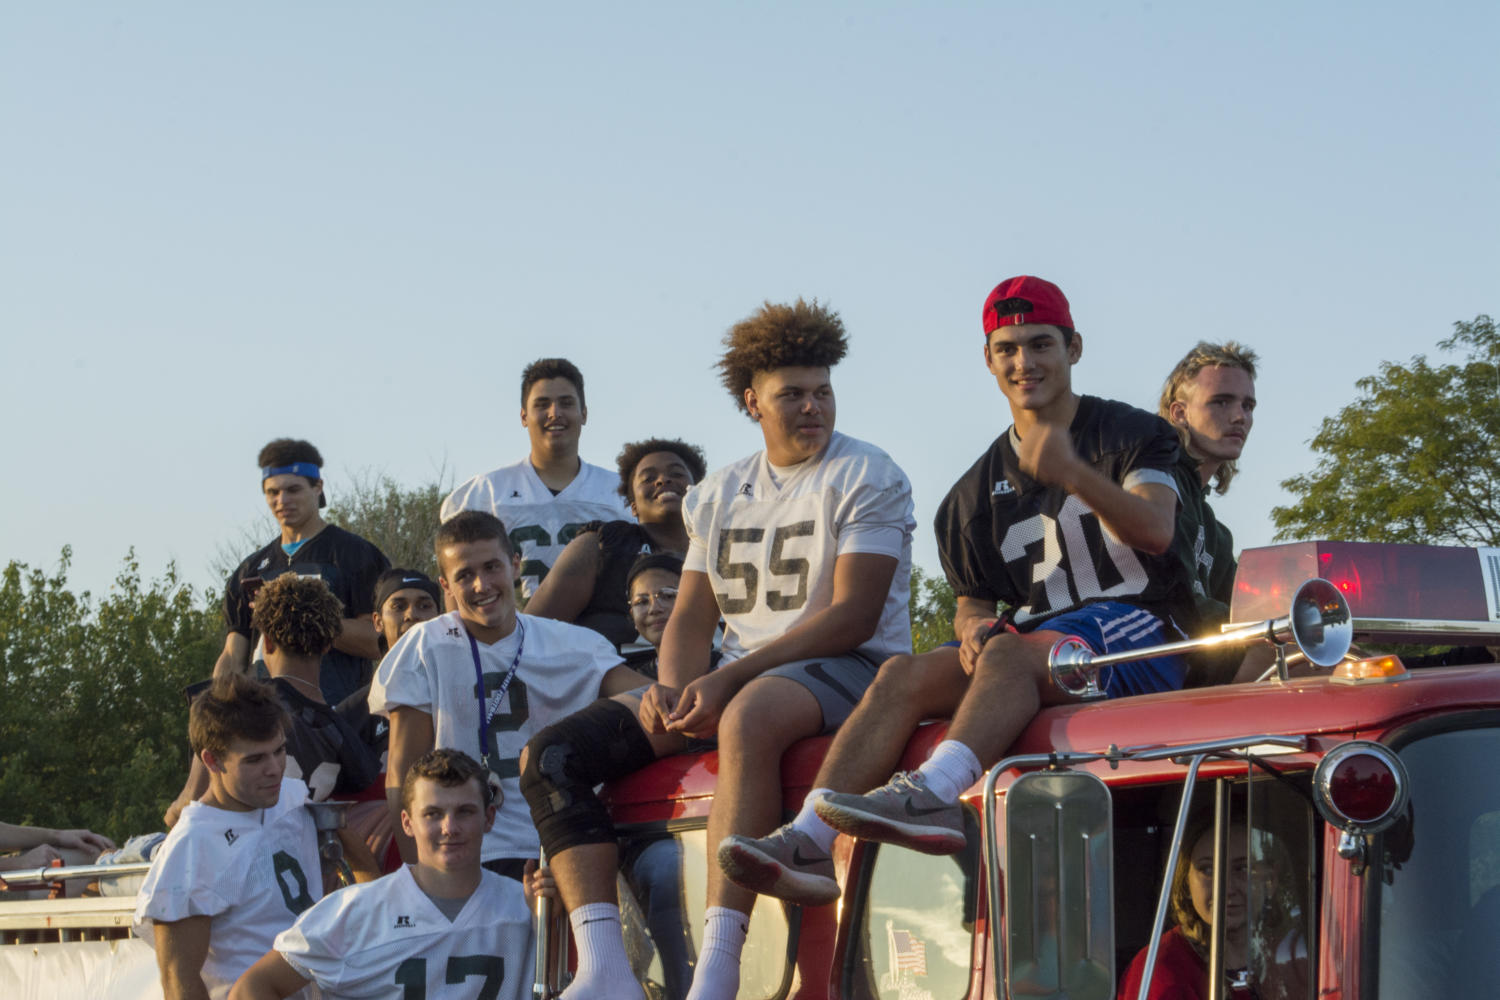 Senior football players Gage Foster, Gabe Del Valle, Gabe Clark, Jalan Robinson, Taylor Royal, Caden Johnson, Tanner Cobb, Jake Rittman, and Bo Miller ride the senior football float. The float was a decommissioned firetruck with a working horn and siren.